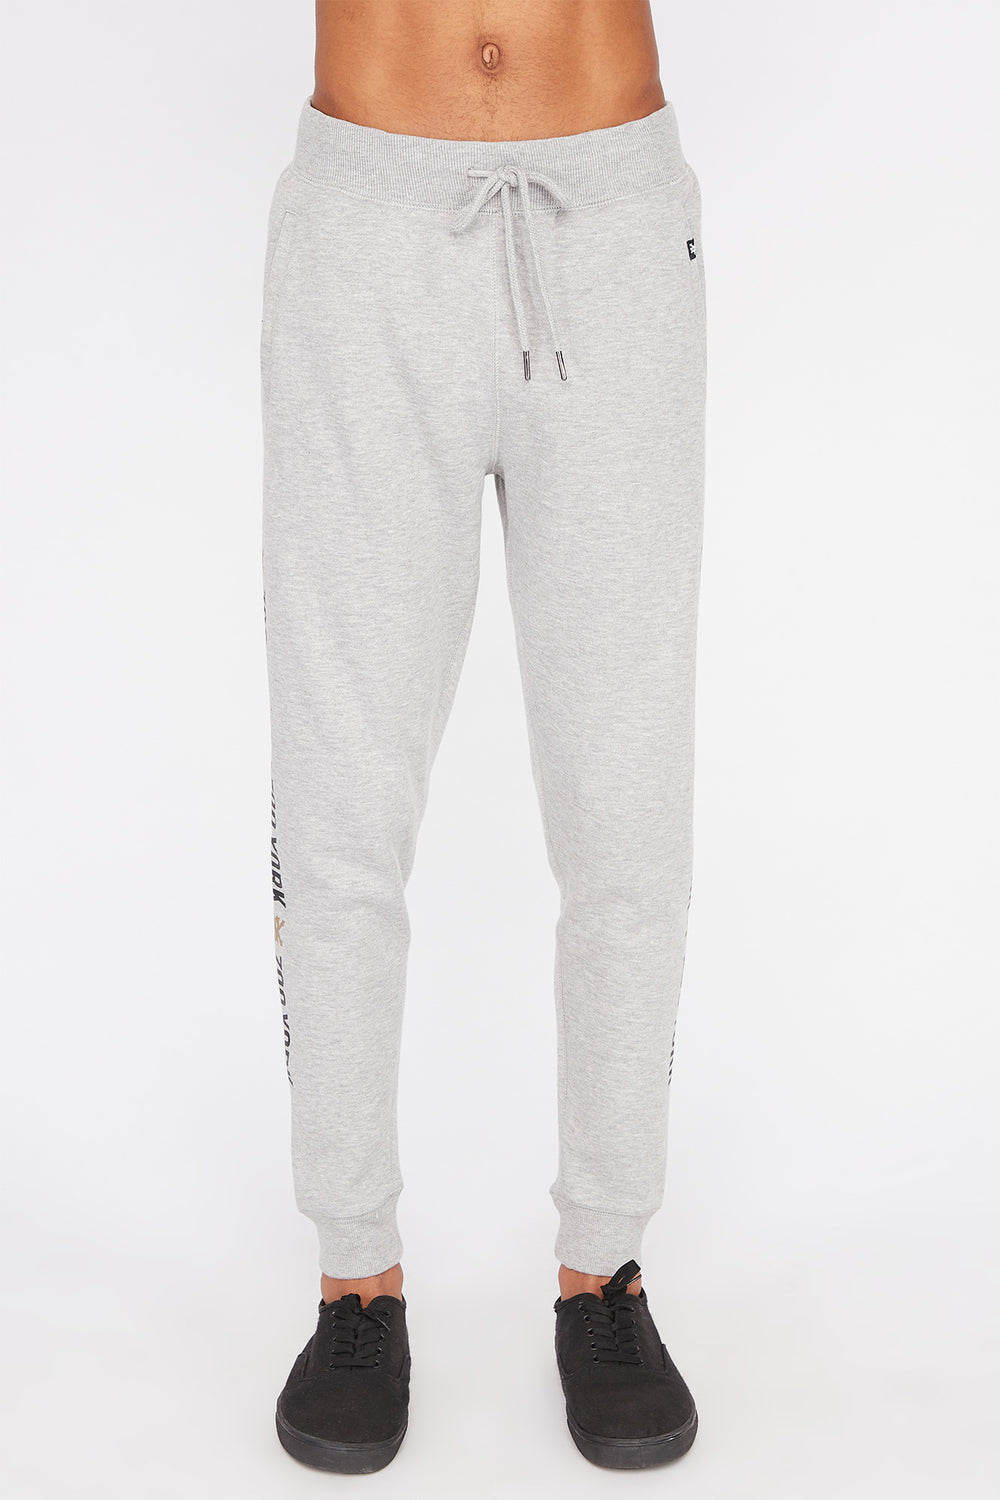 Zoo York Mens Basic Logo Jogger Heather Grey